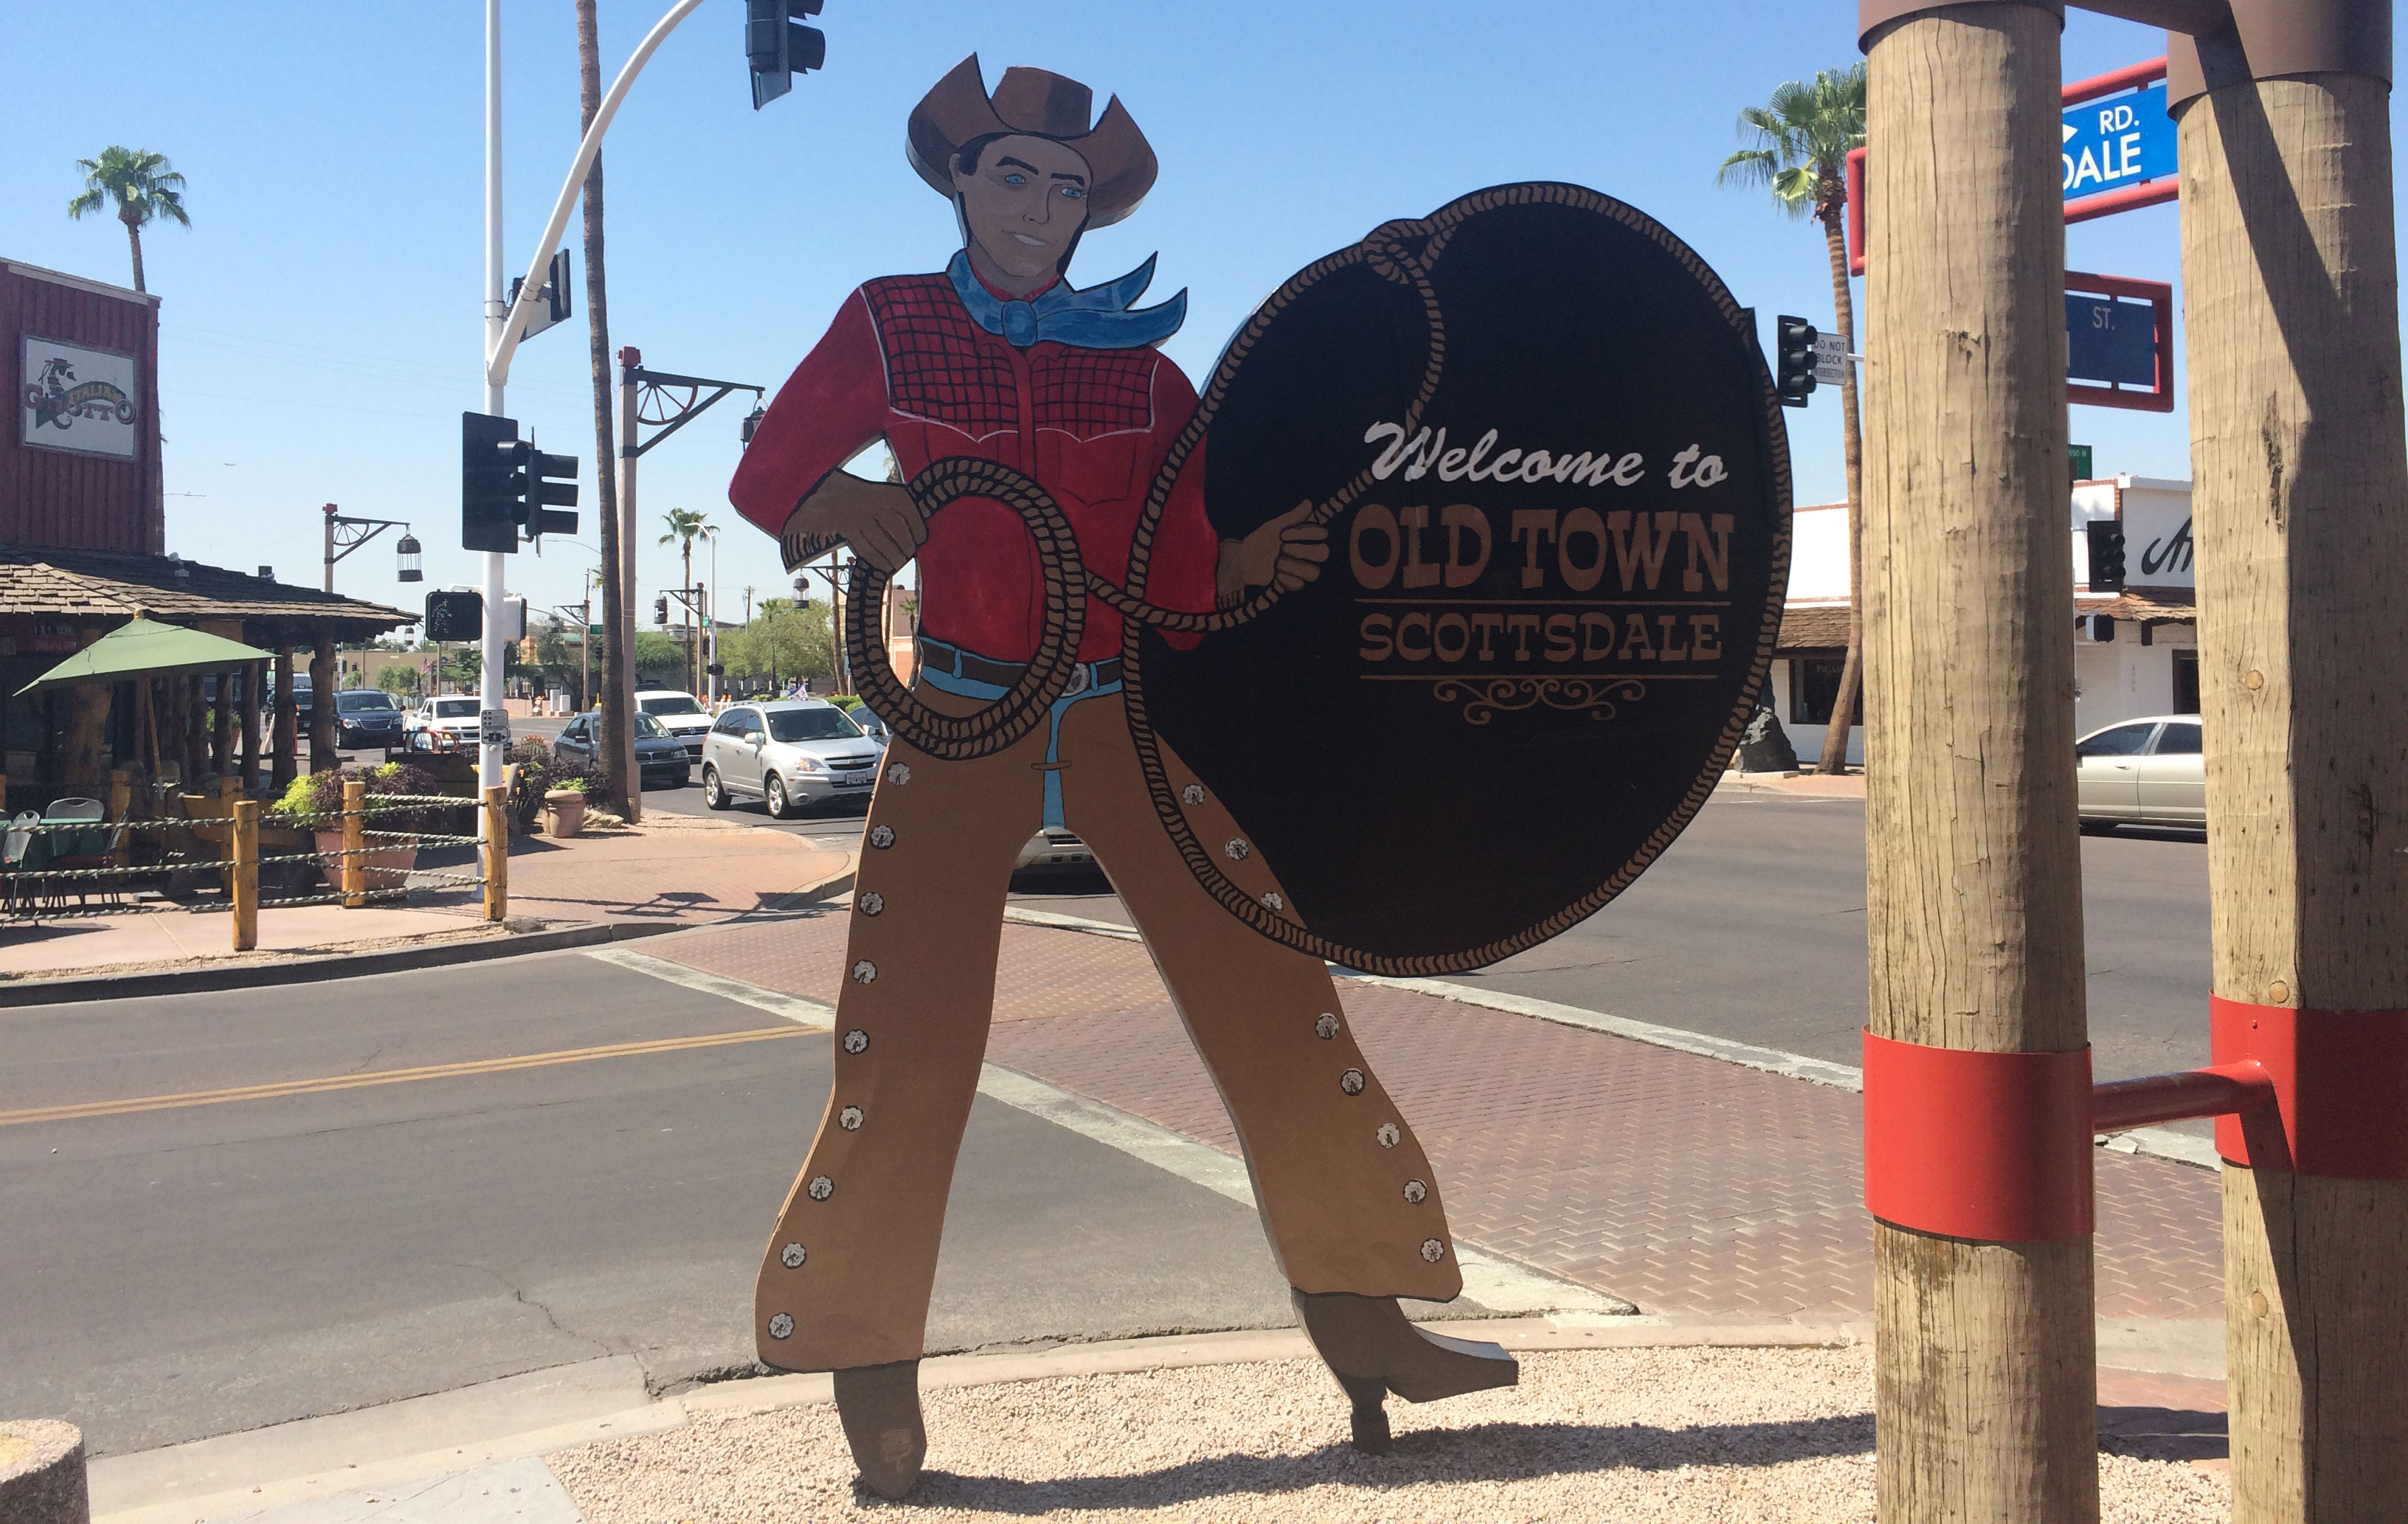 Old Town Scottsdale cowboy sign